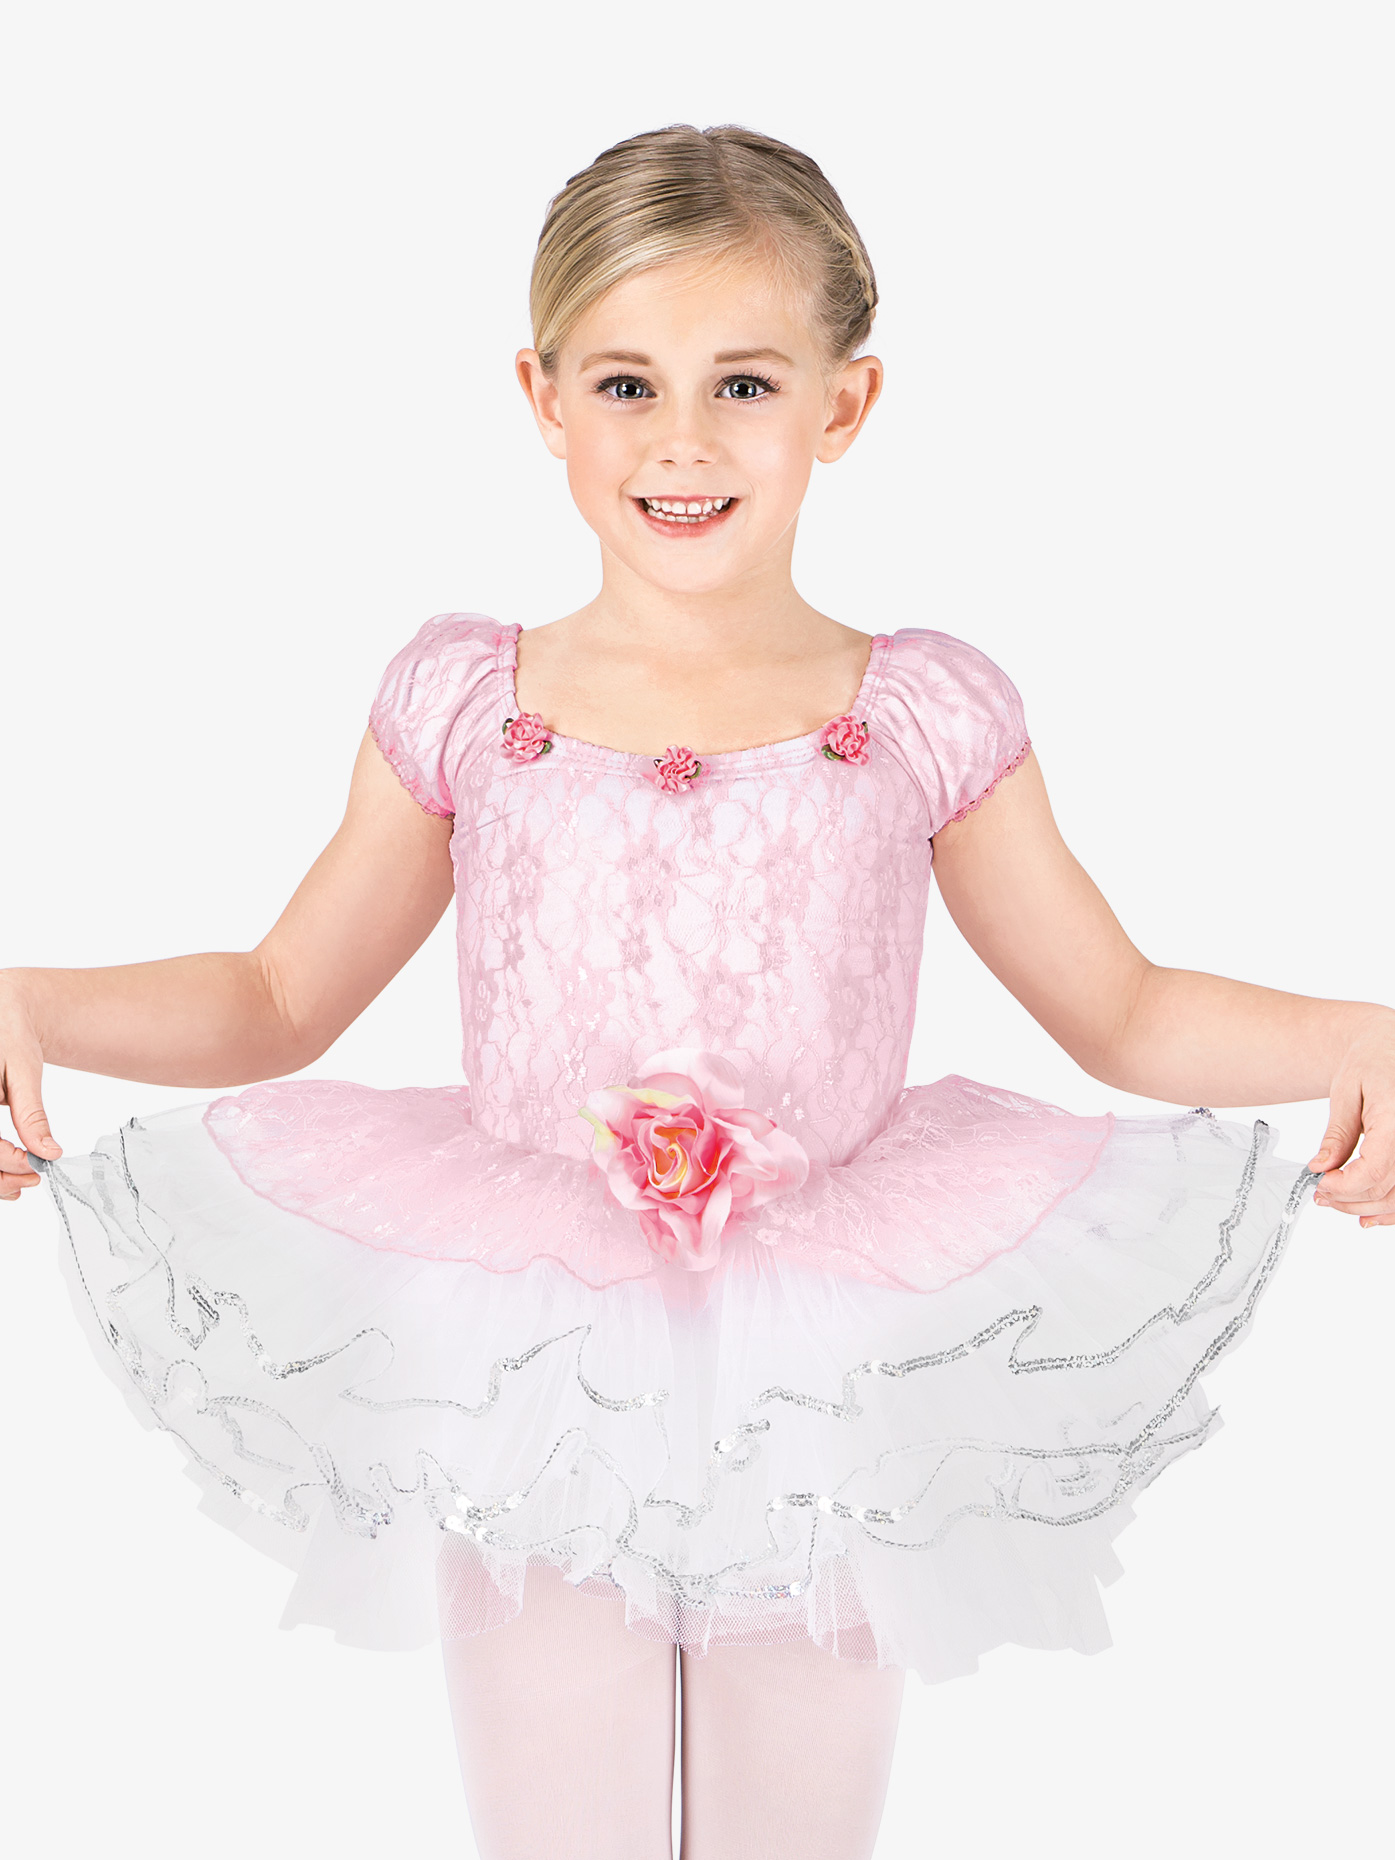 La Petite Ballerina Child Rose Lace Tutu Dance Costume Dress SK582